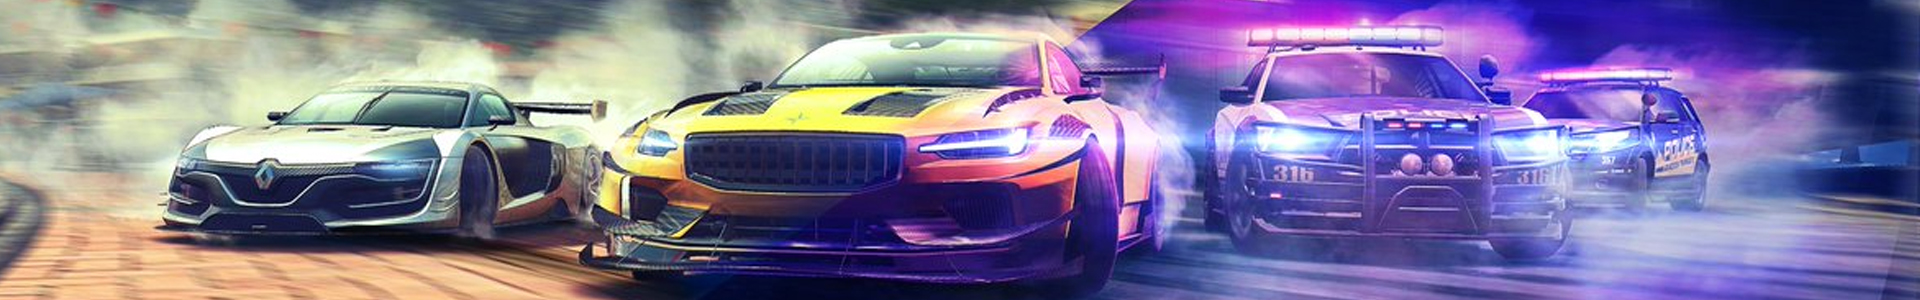 Banner media of Need for Speed Heat video game.